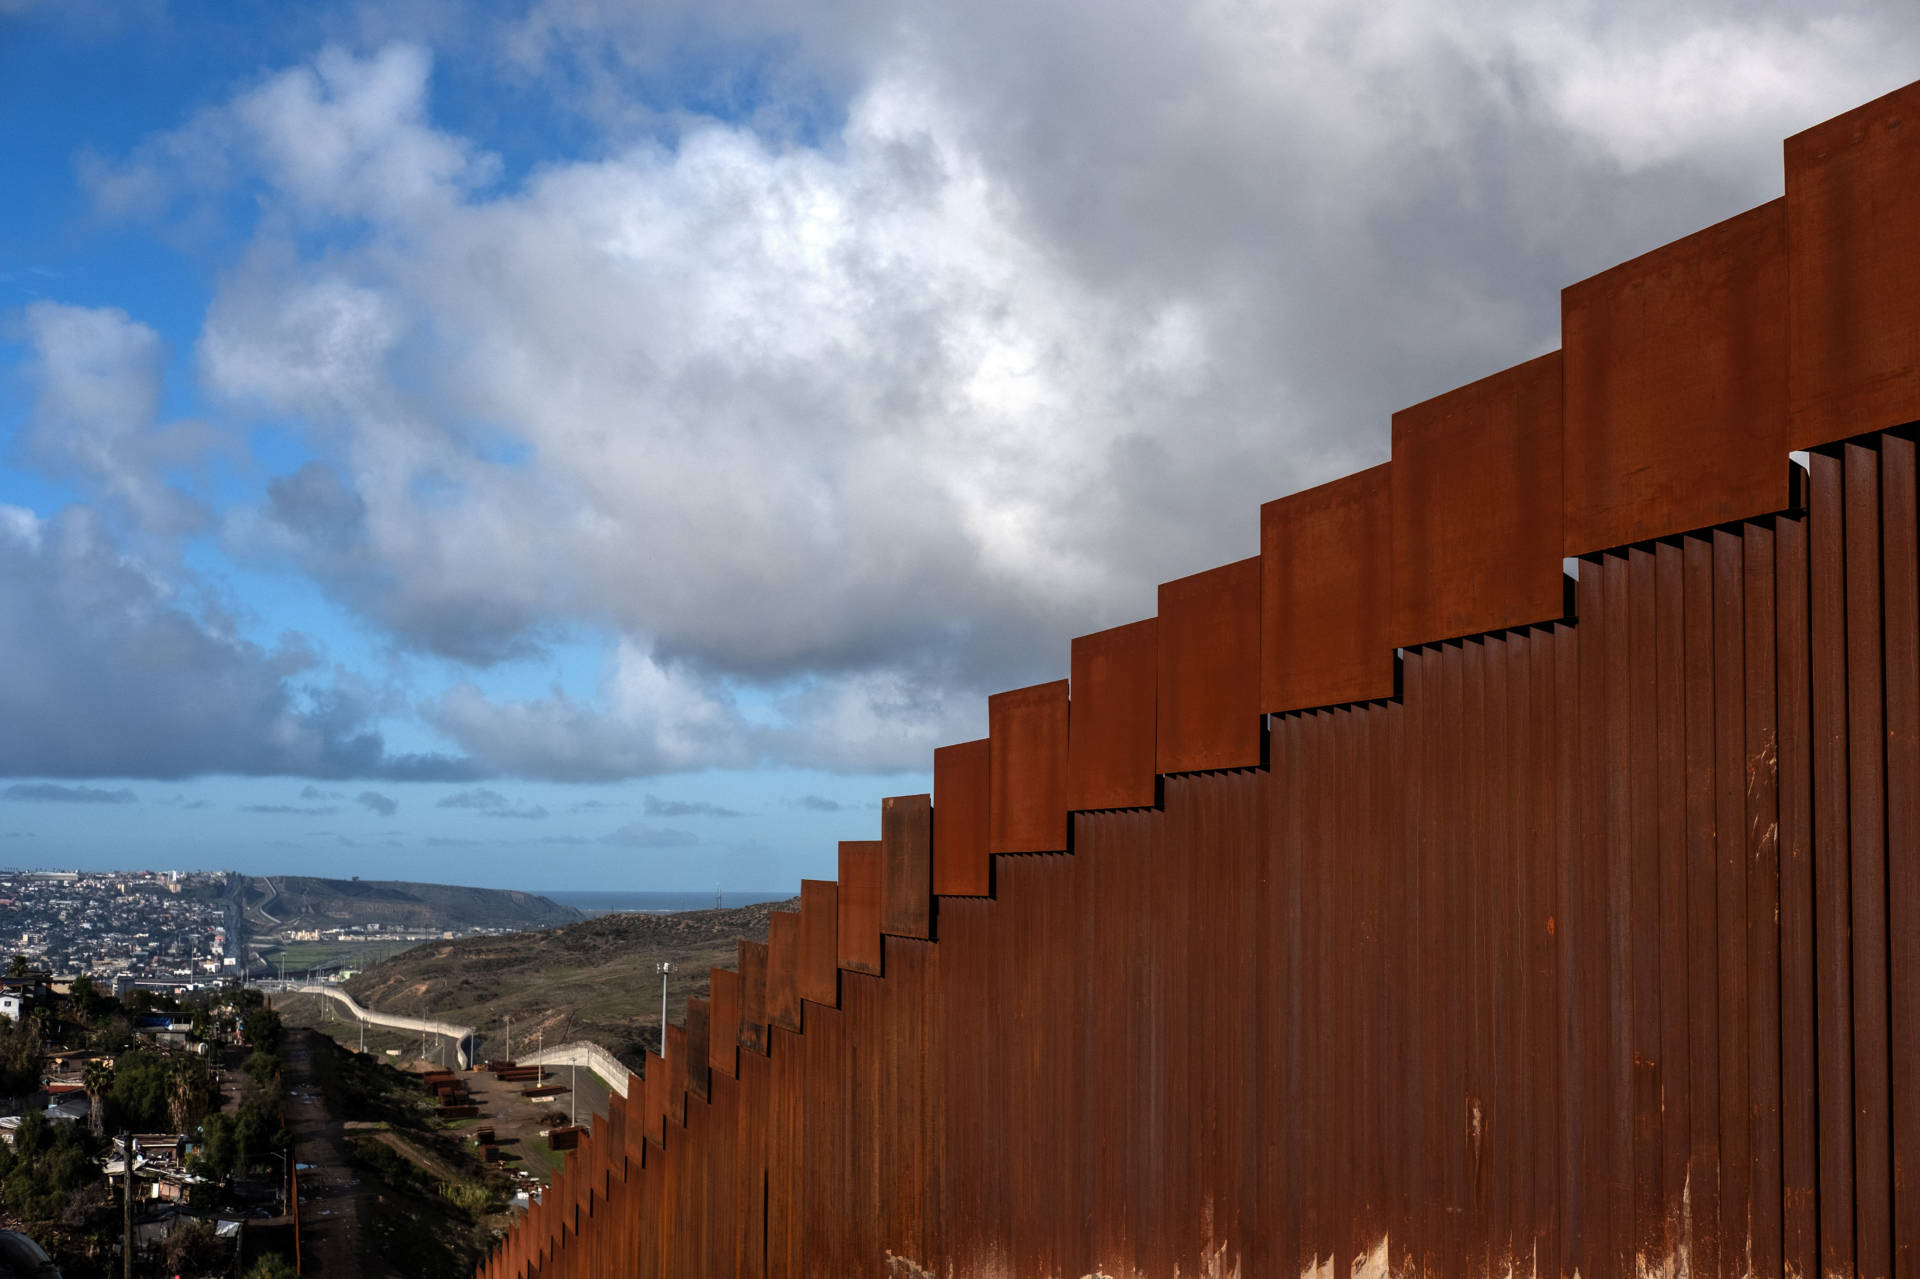 A section of the reinforced U.S.-Mexico border fence as seen from Tijuana, Mexico, on Sunday. Guillermo Arias/AFP/Getty Images